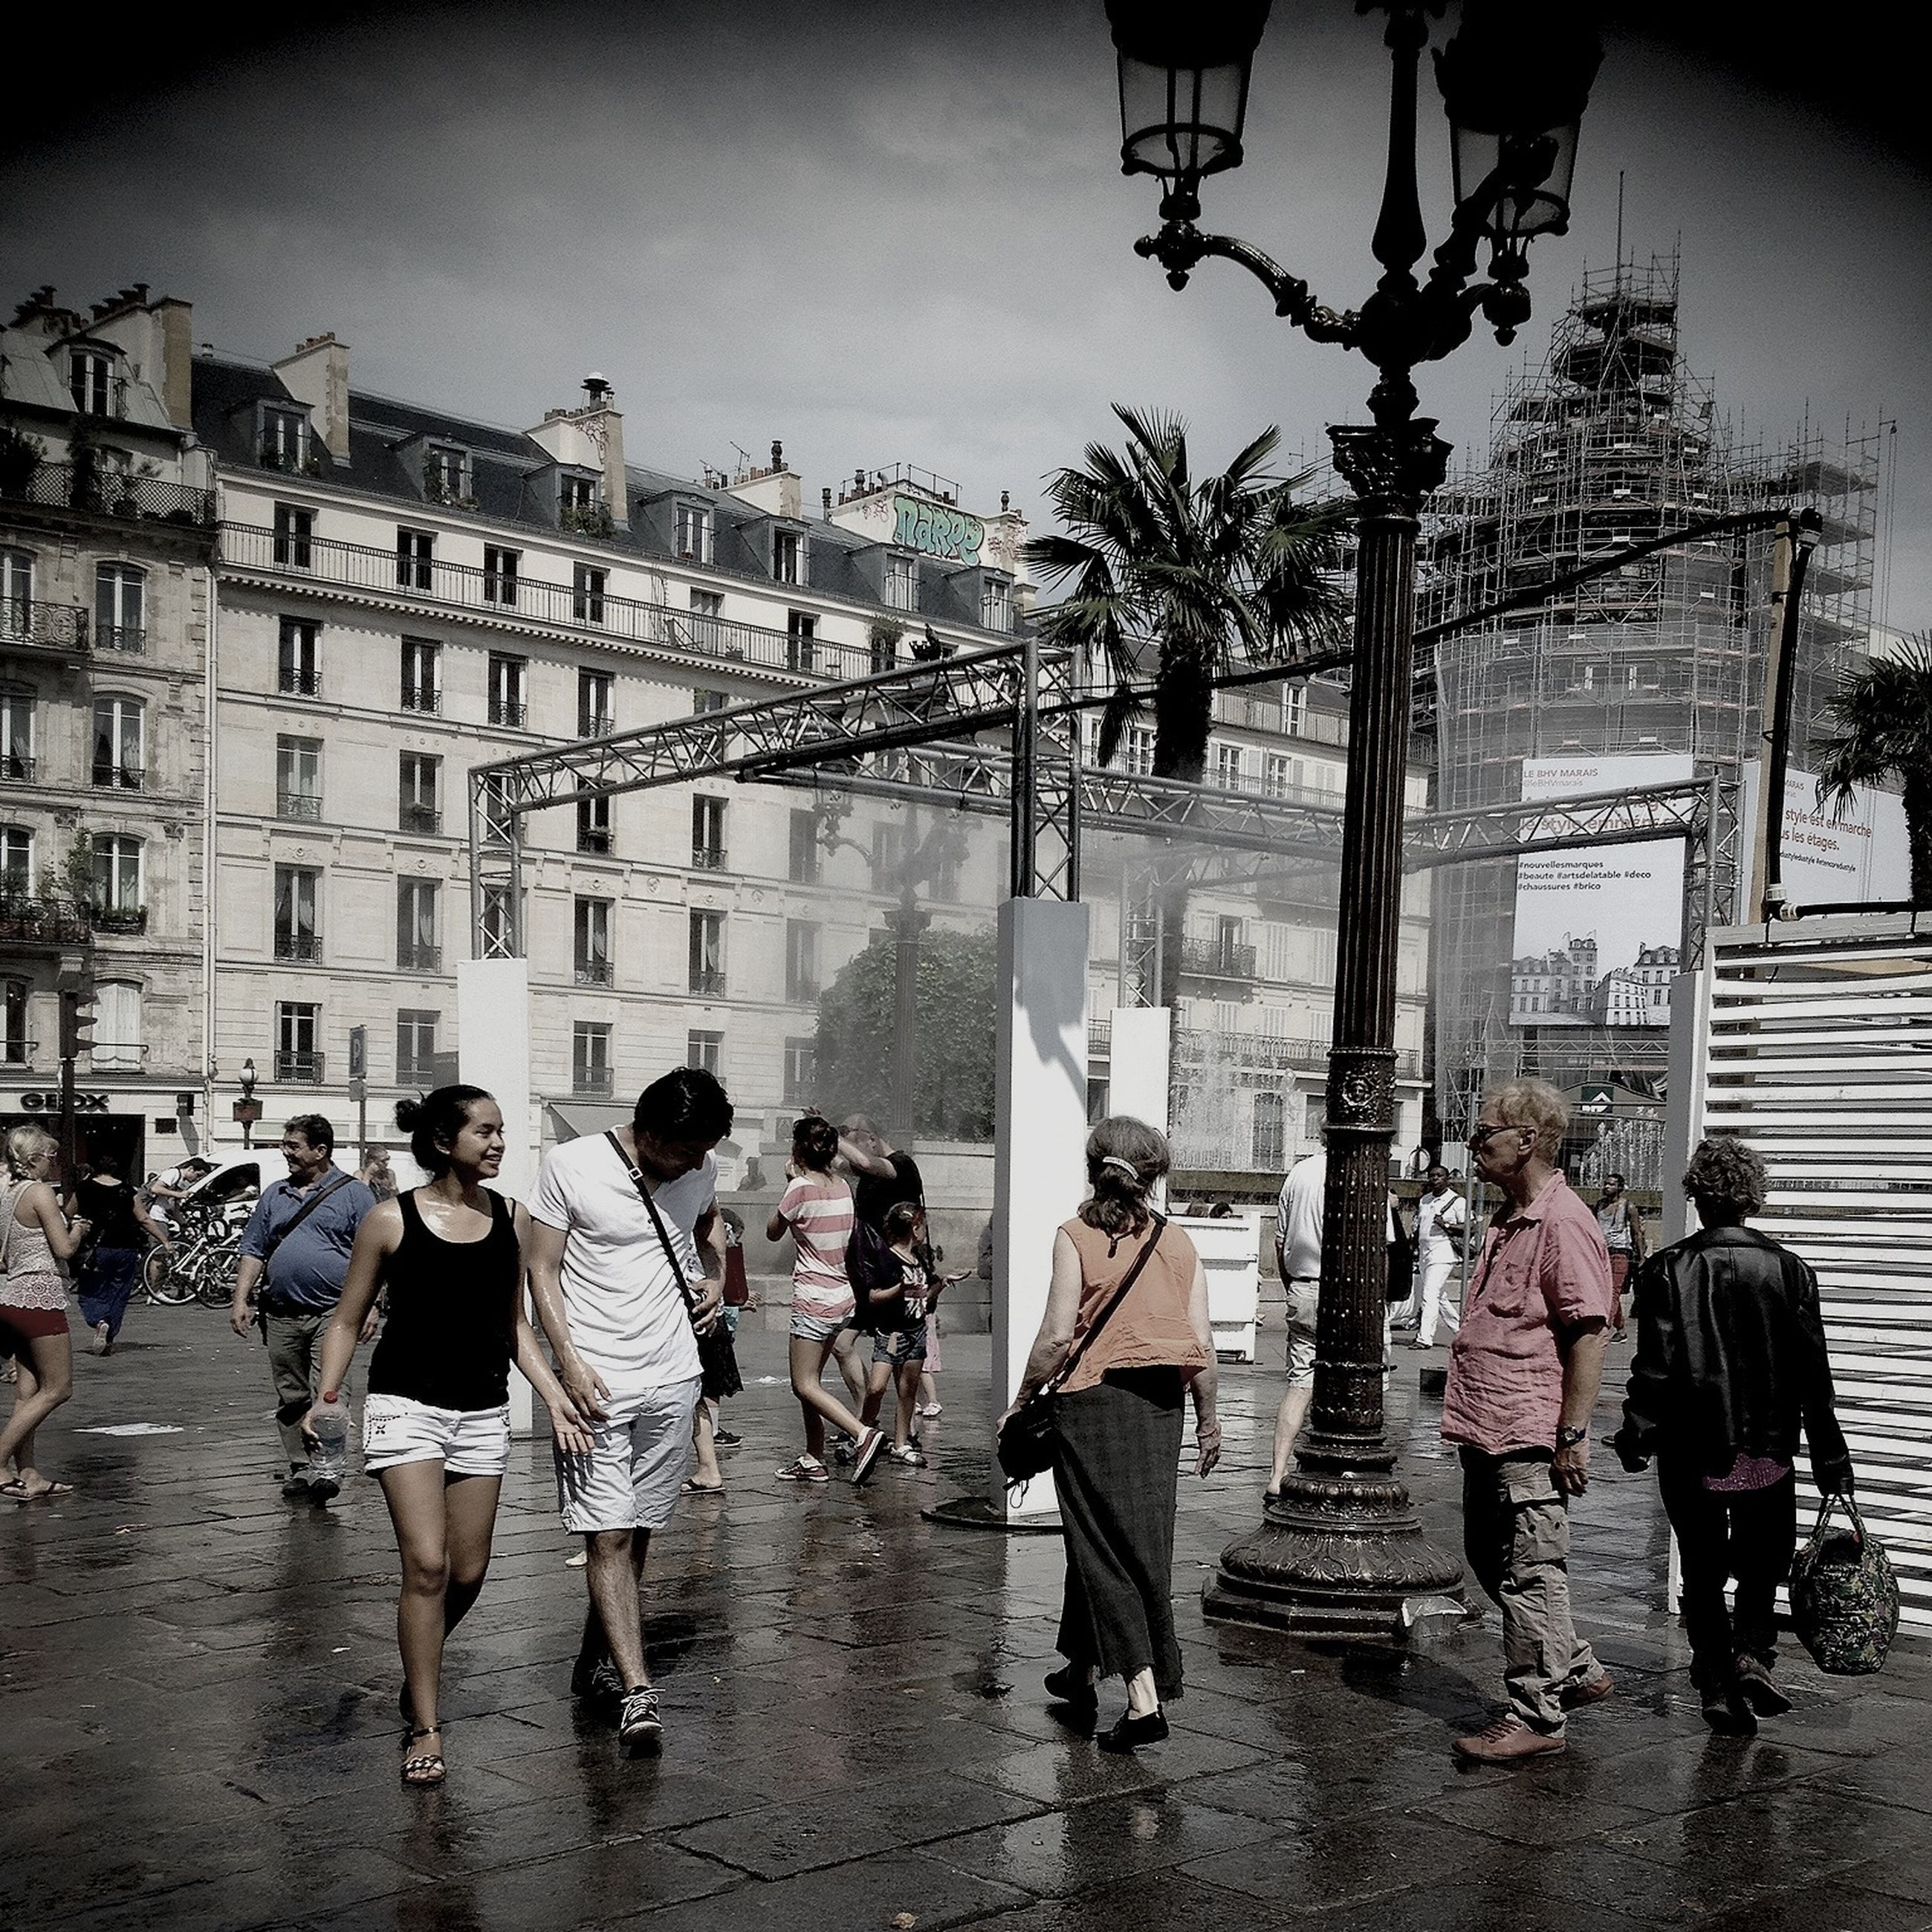 large group of people, men, person, lifestyles, building exterior, architecture, walking, built structure, street, city, leisure activity, city life, mixed age range, umbrella, crowd, water, togetherness, full length, casual clothing